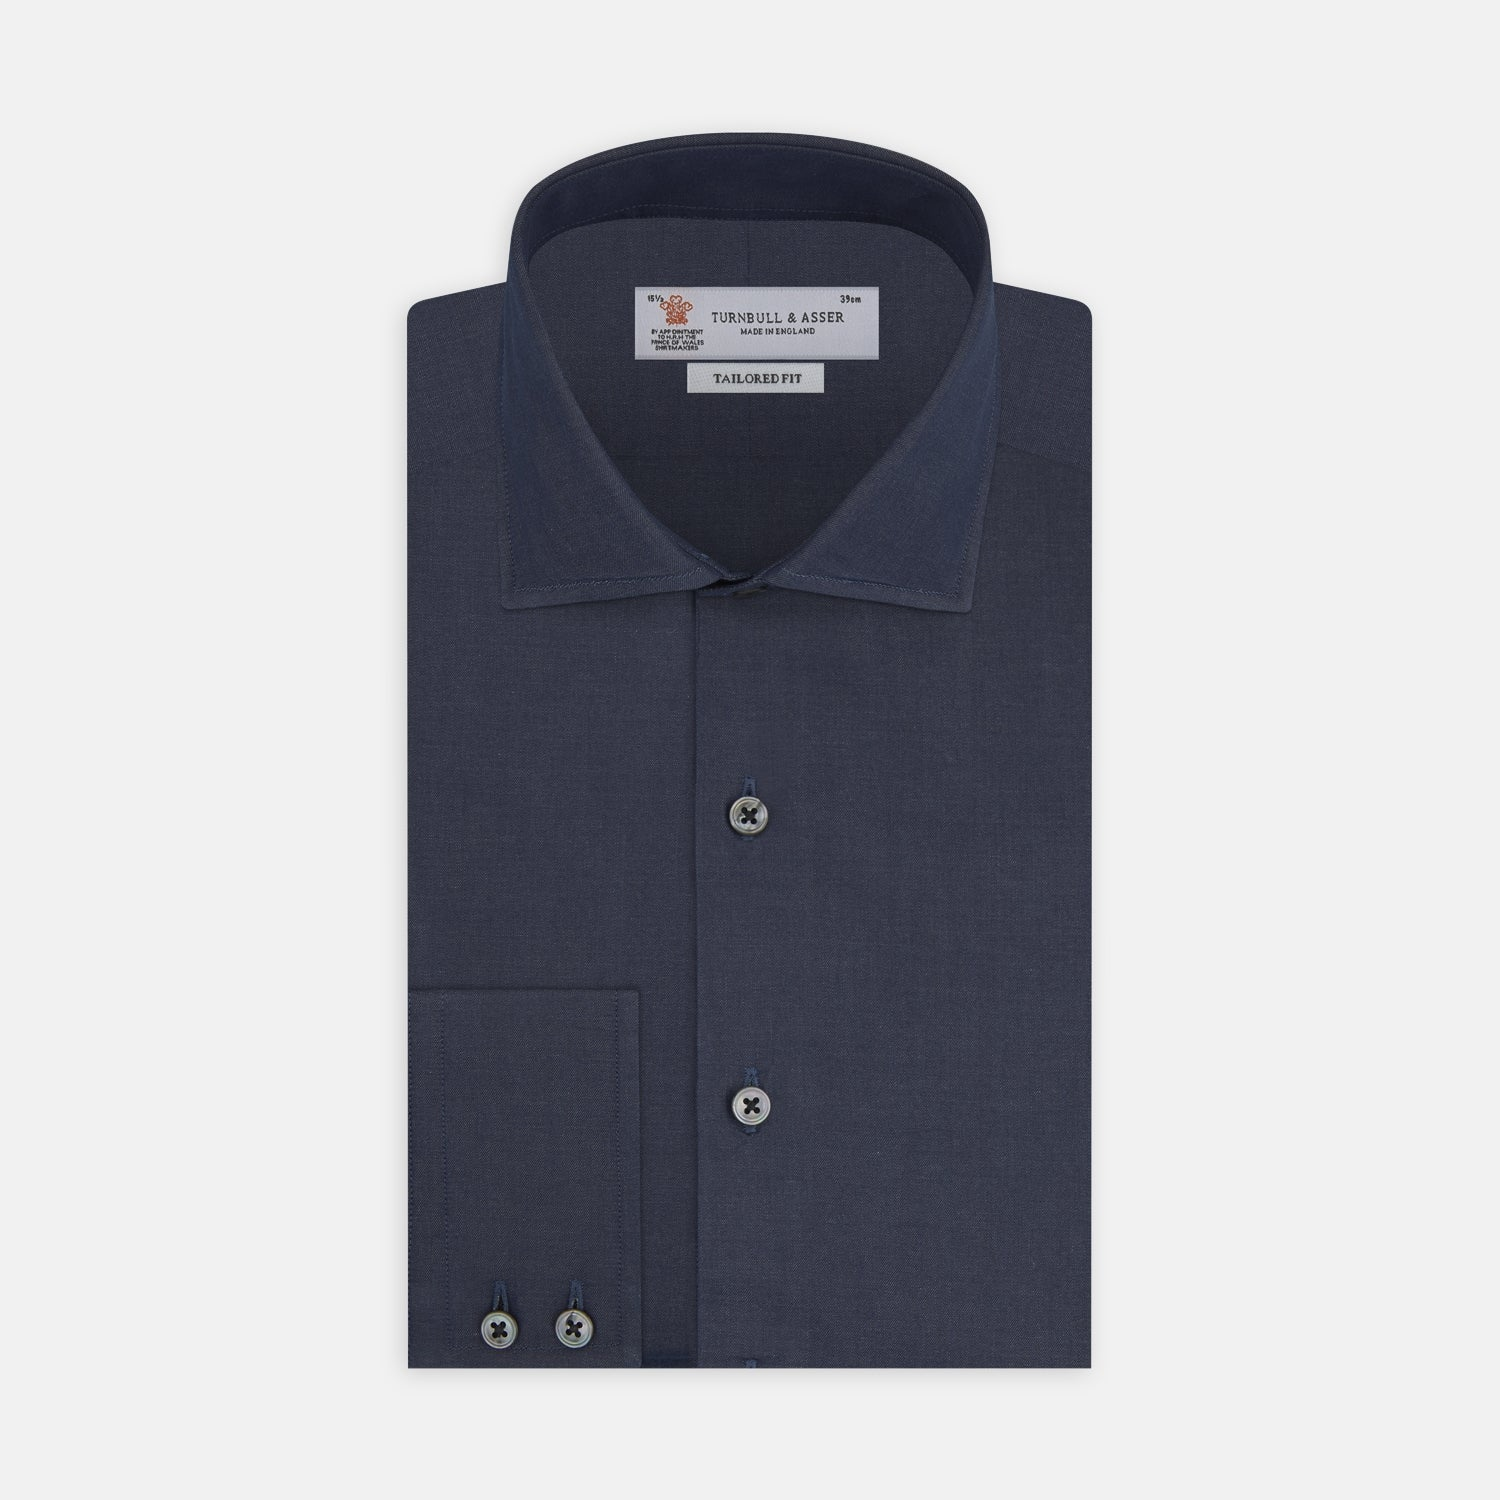 Tailored Fit Navy Cashmere Blend Shirt with Kent Collar and 2-Button Cuffs - 16.0 from Turnbull & Asser